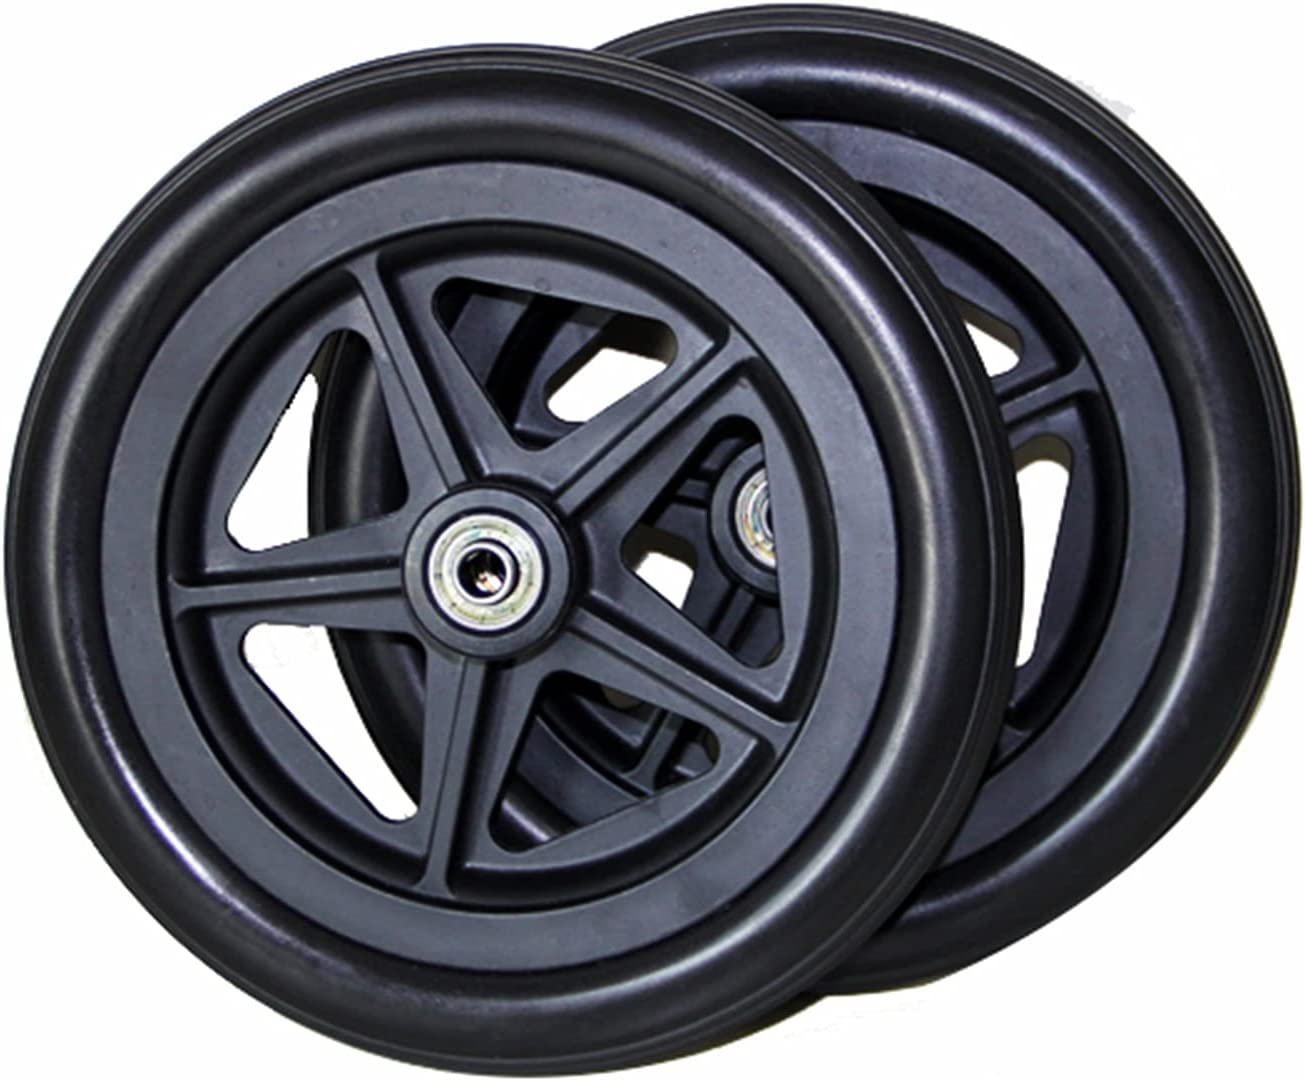 ASDFGHJ Solid Black Caster Wheel, A Pair of Replacement Front Wh